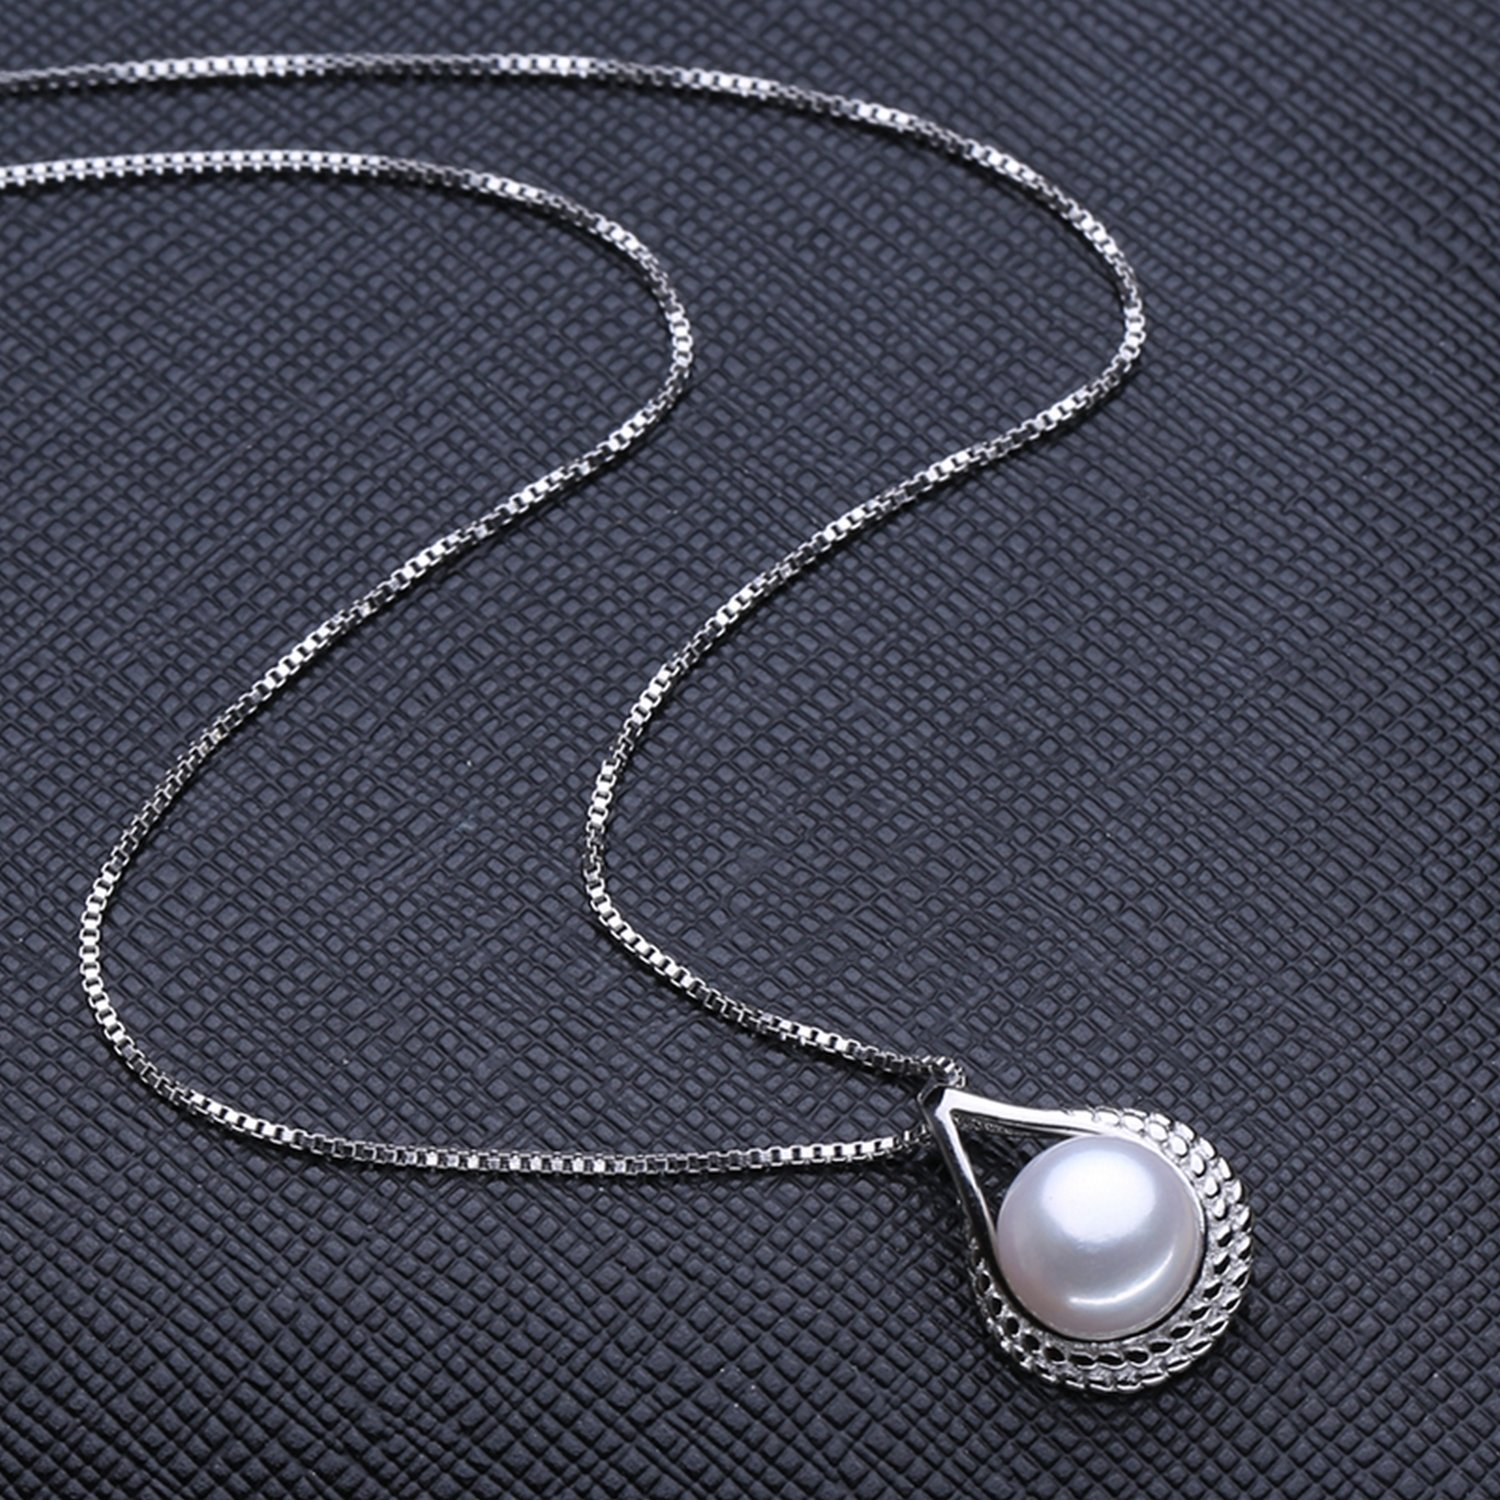 CS-DB Jewelry Silver Stone Pearl Chain Charm Pendants Necklaces